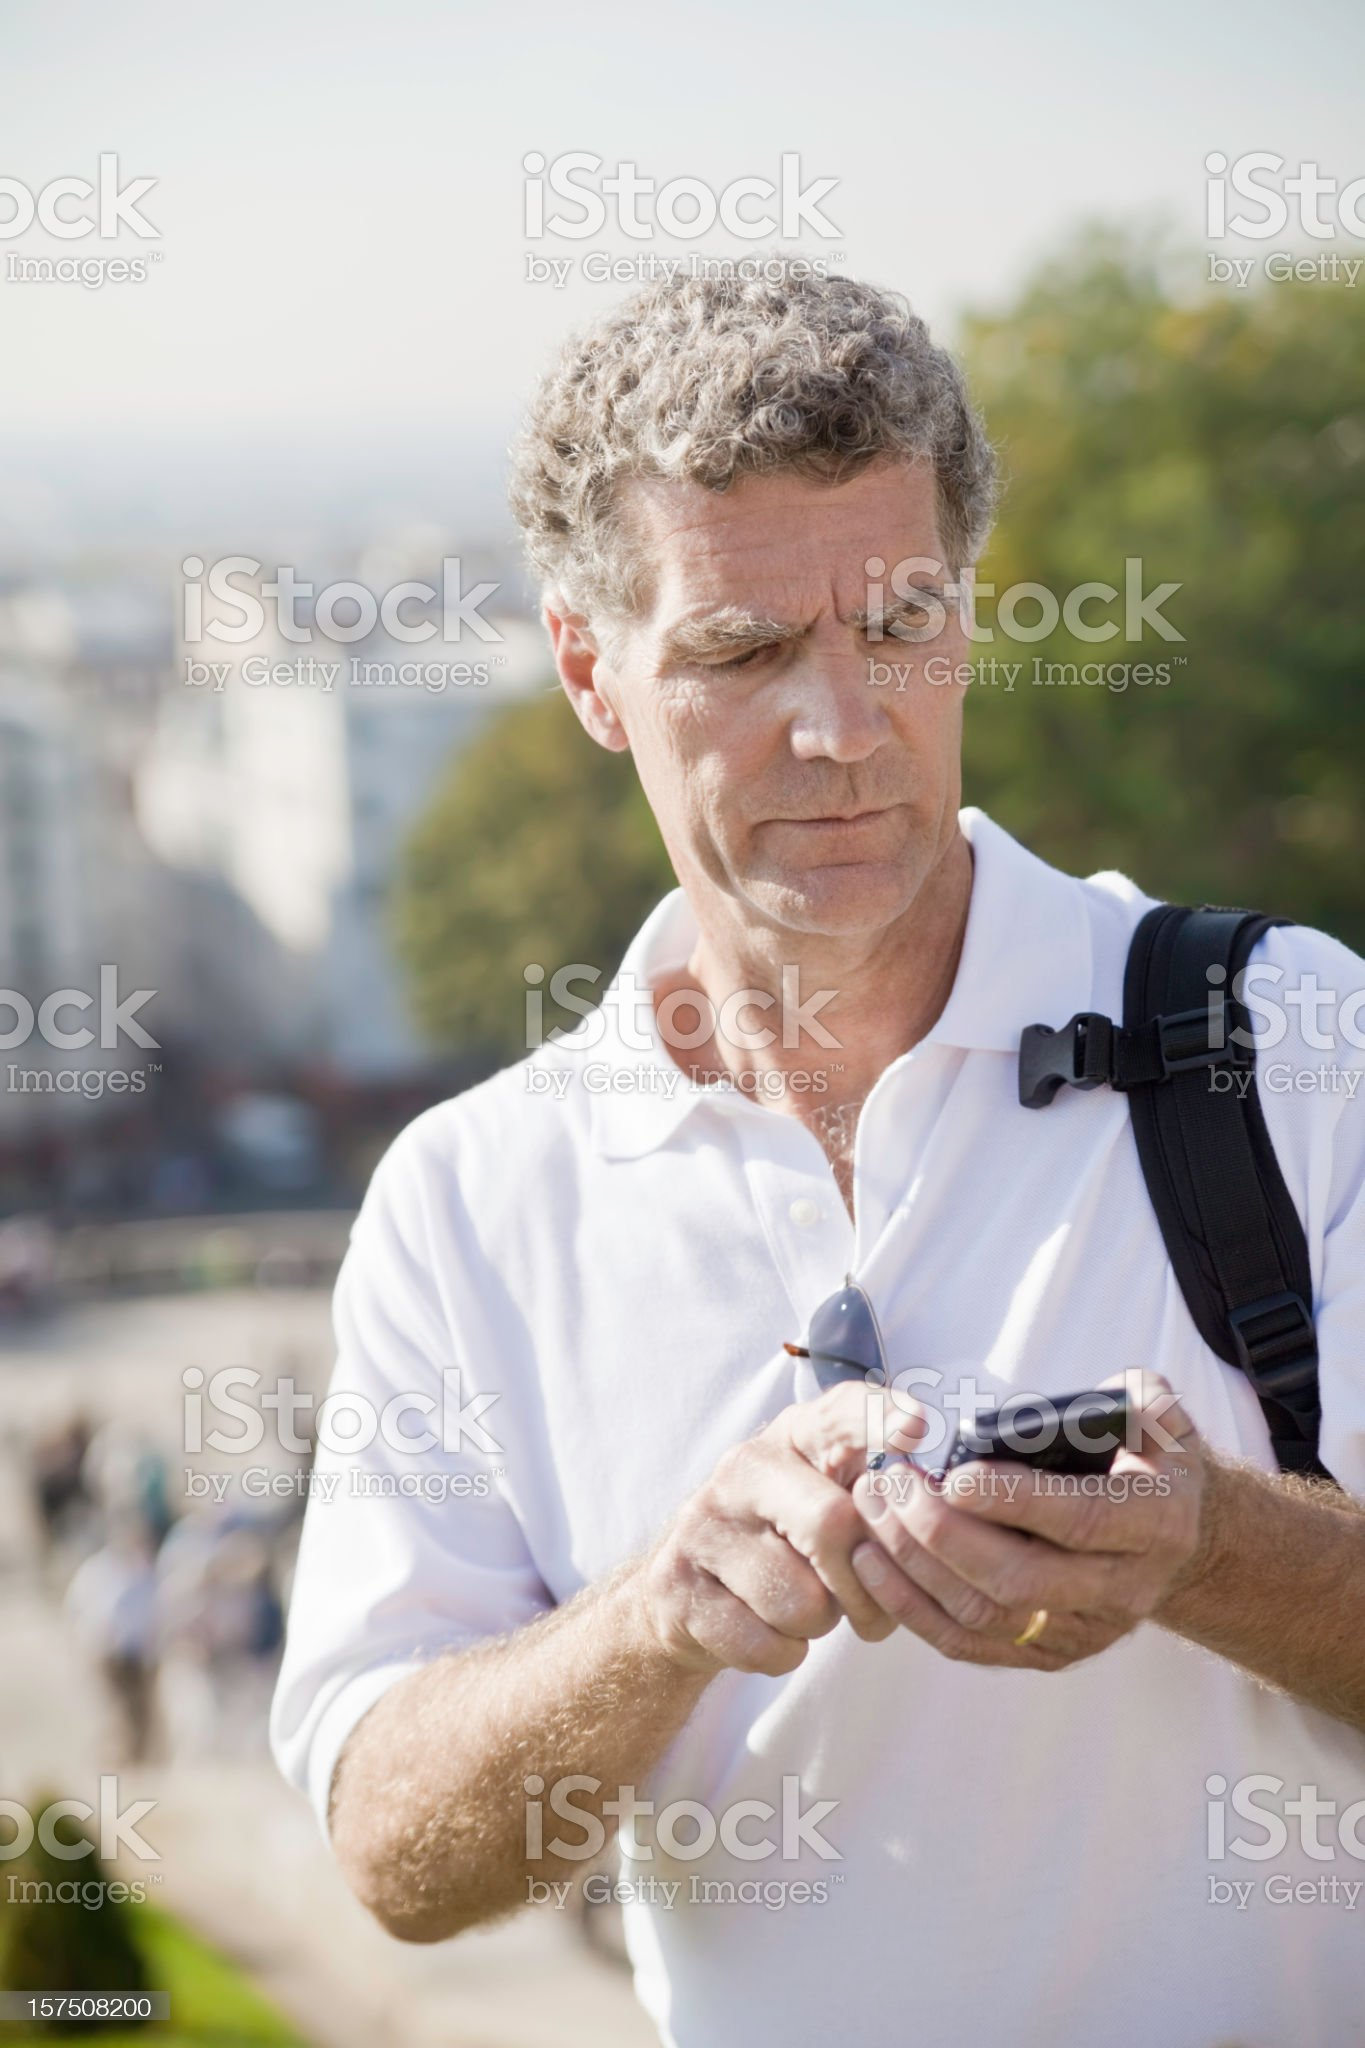 Man Using Cell Phone royalty-free stock photo